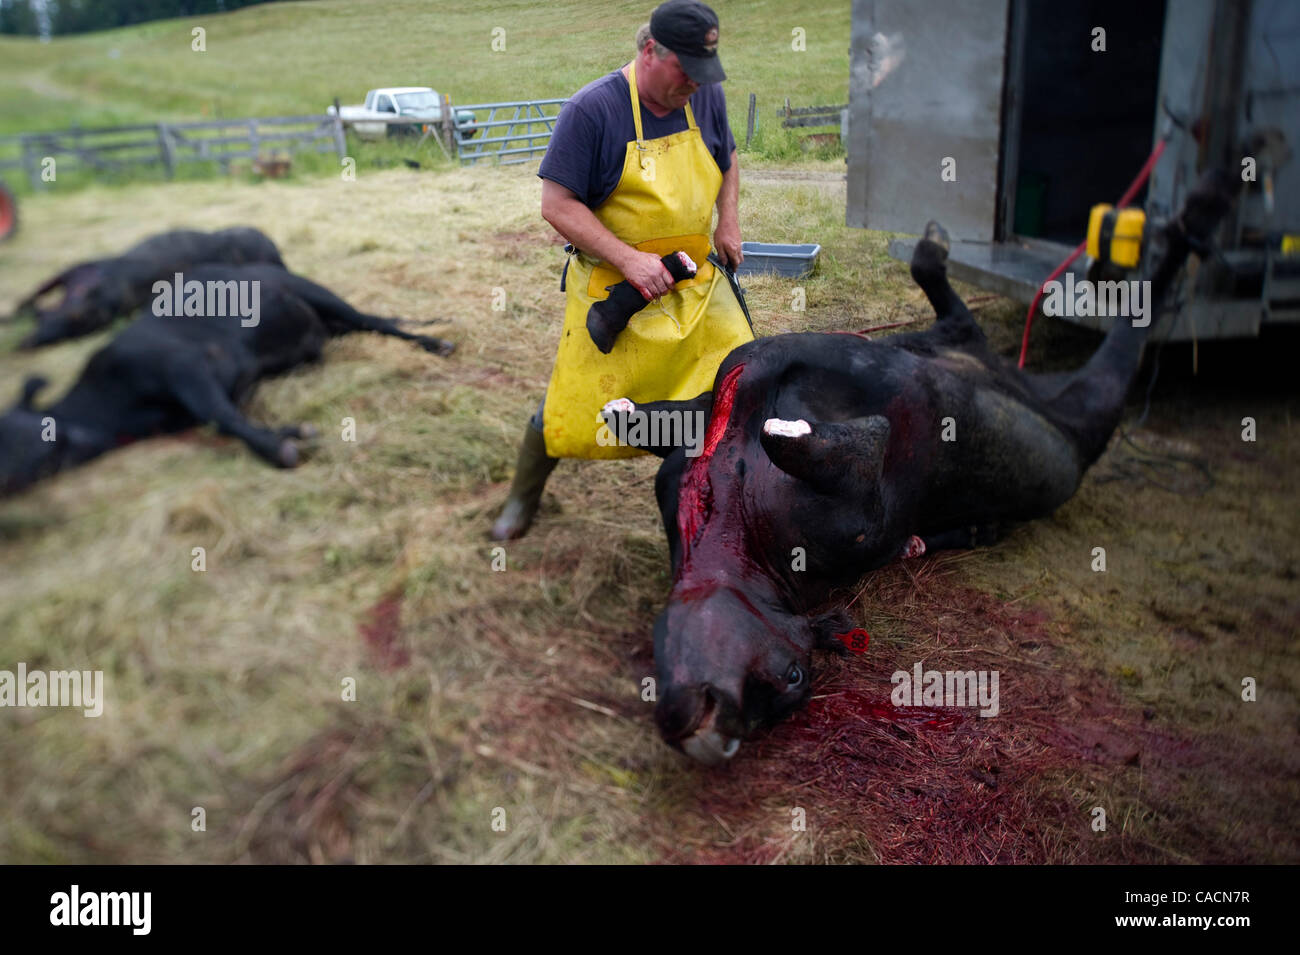 Jun 24, 2010 - Elkton, Oregon, U.S. - Grass fed beef cattle are slaughtered on the Fisher Ranch near Elkton.  These - Stock Image